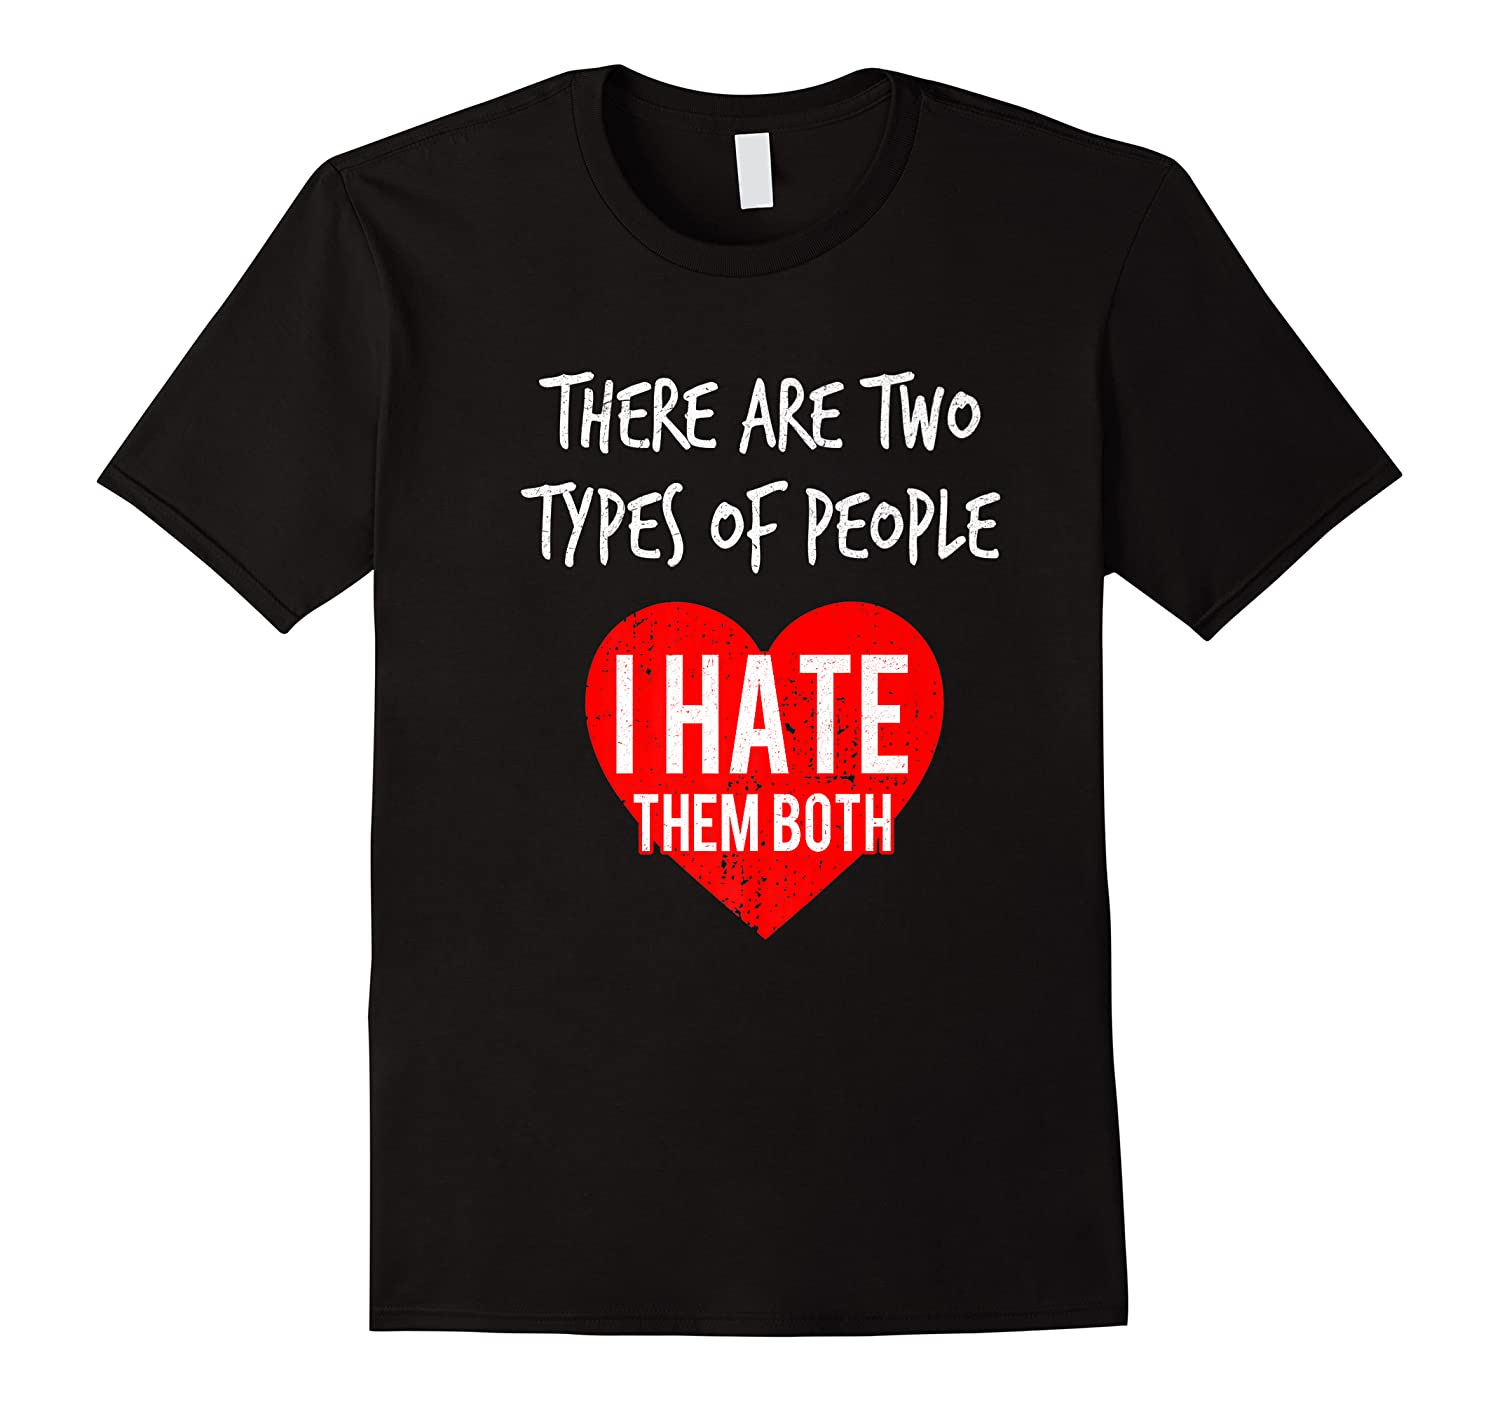 Two Types Of People I Hate Both Sarcastic Funny Ironic Gift Shirts